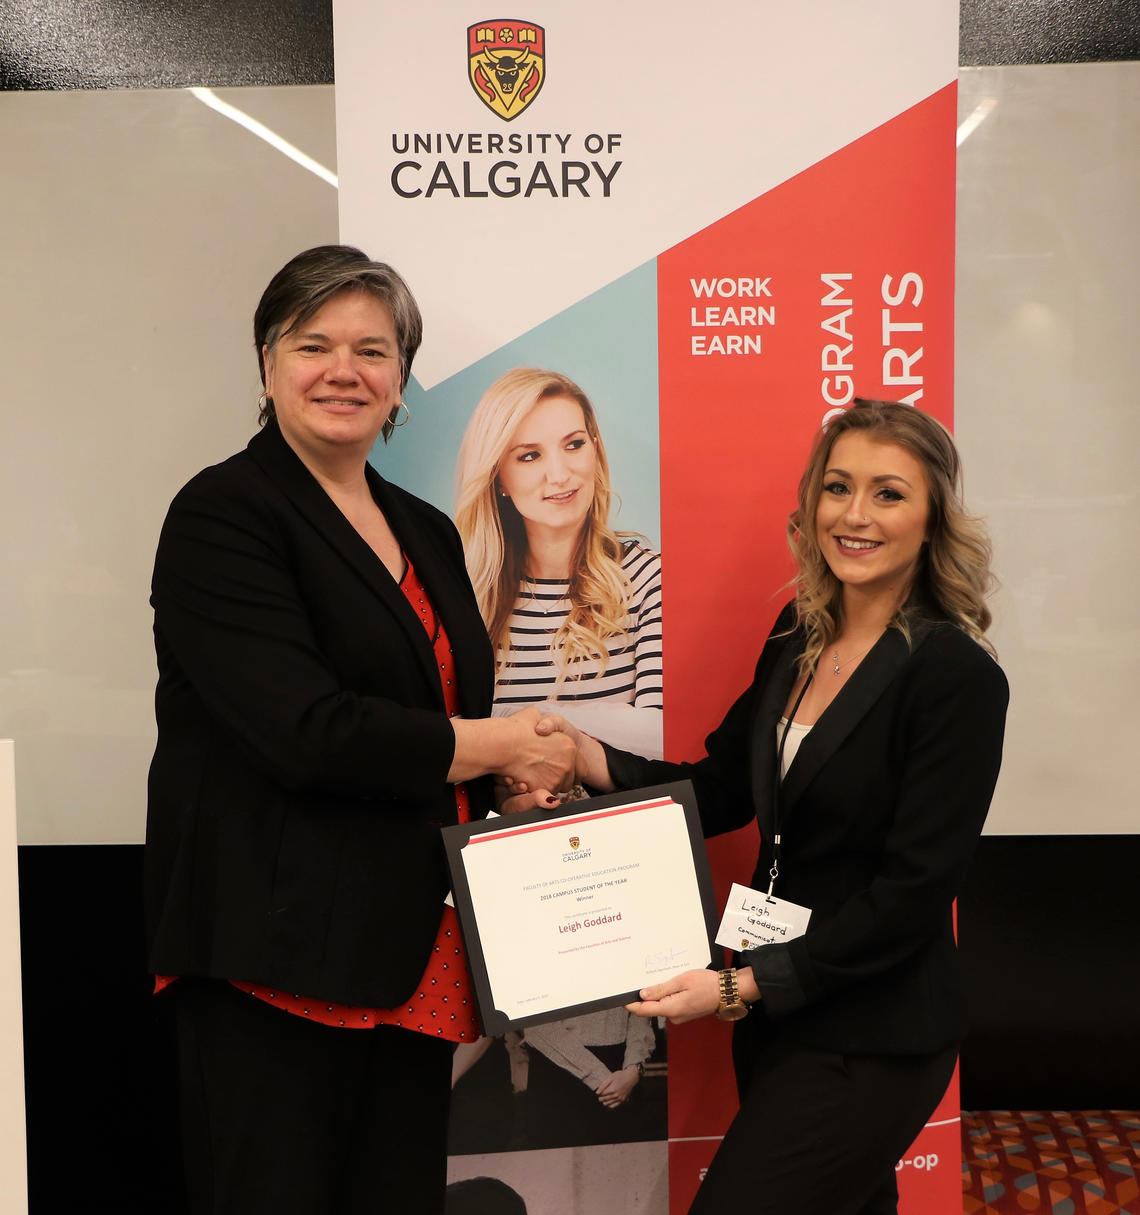 Pascale Sicotte, vice-dean of arts, presents Leigh Goddard with her certificate for winning Student of the Year working for an on-campus office. Goddard was nominated by her employer, Lies Thompson, for her excellent work done during her co-op placement in the Undergraduate Science Centre.